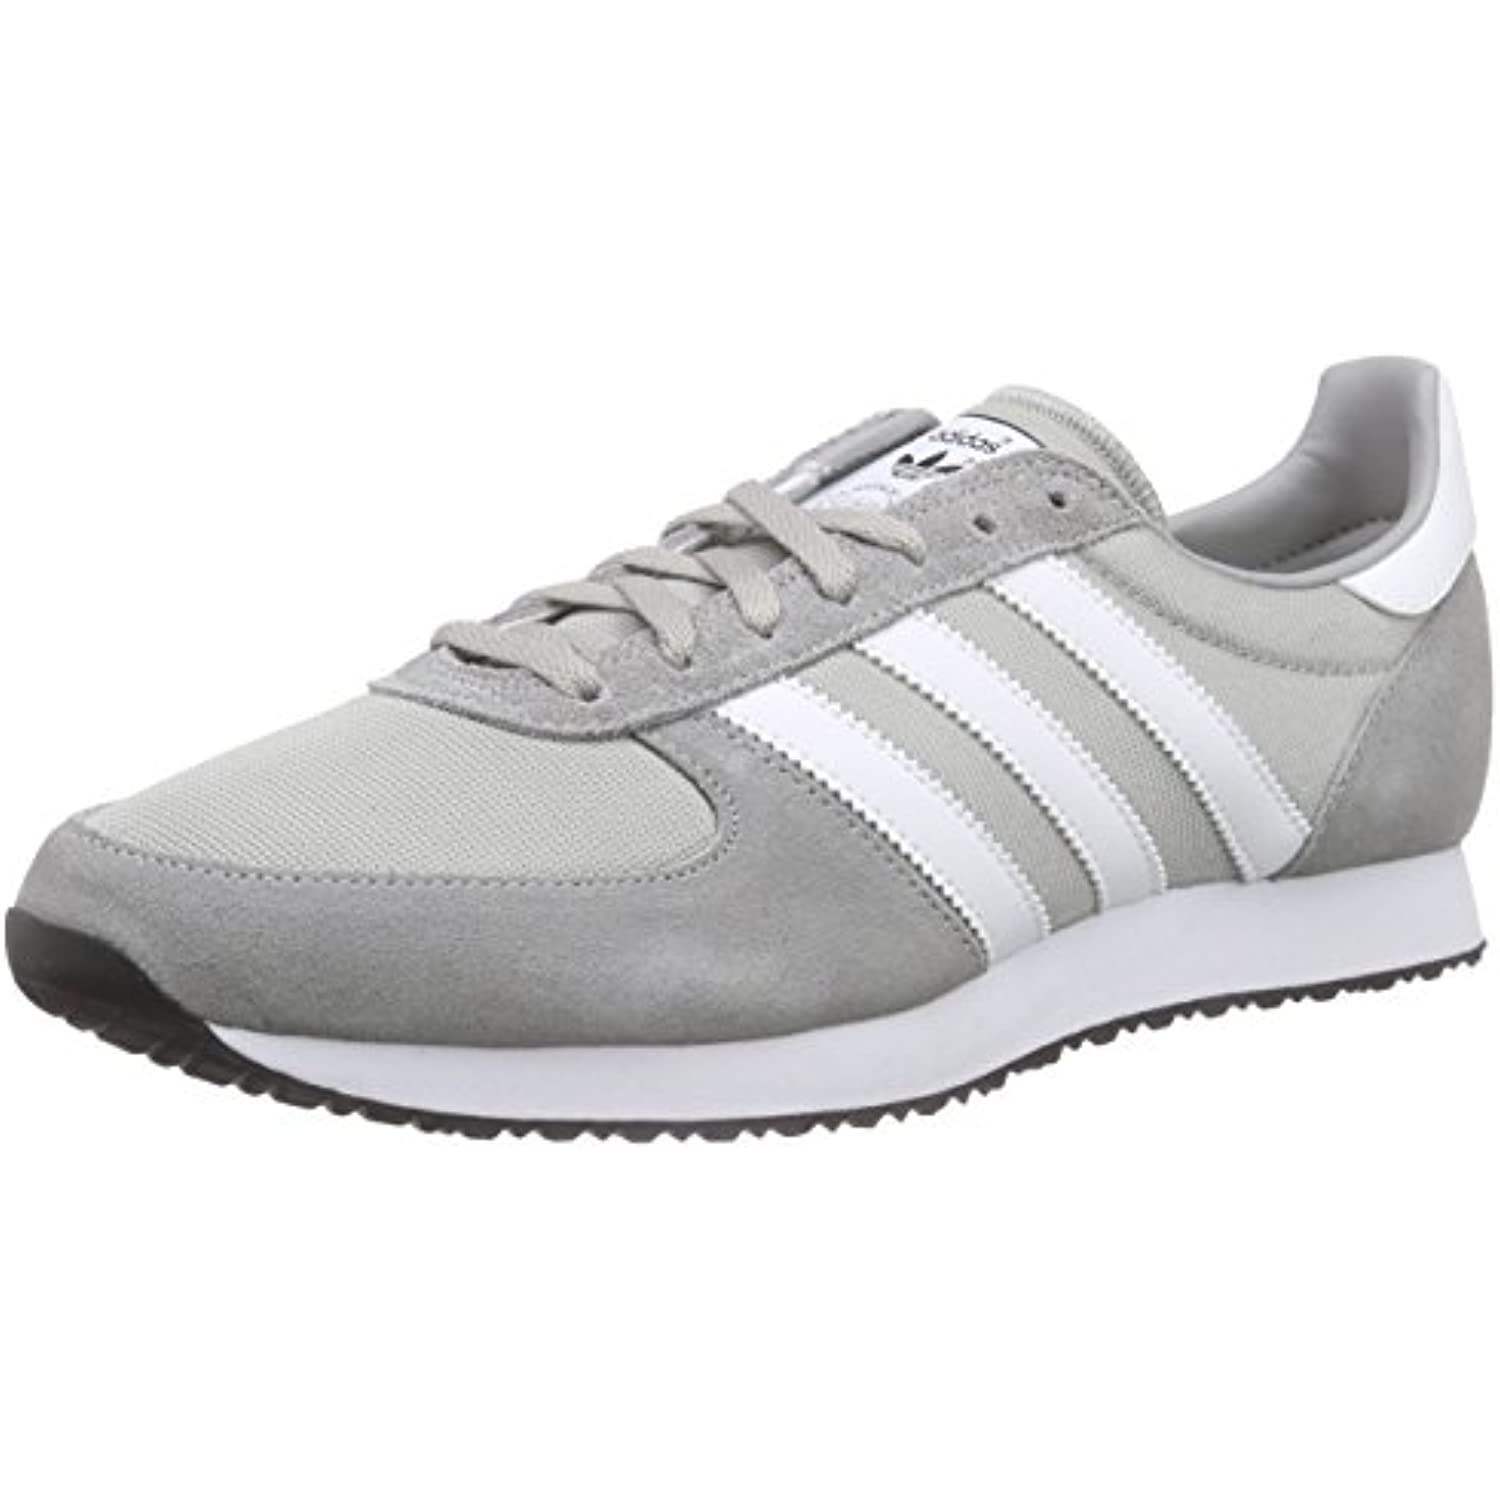 new product 7a80c eb2b6 Adidas ZX Racer, Racer, Racer, Chaussures de Sport Homme B01B60ISWY - 29e8ef